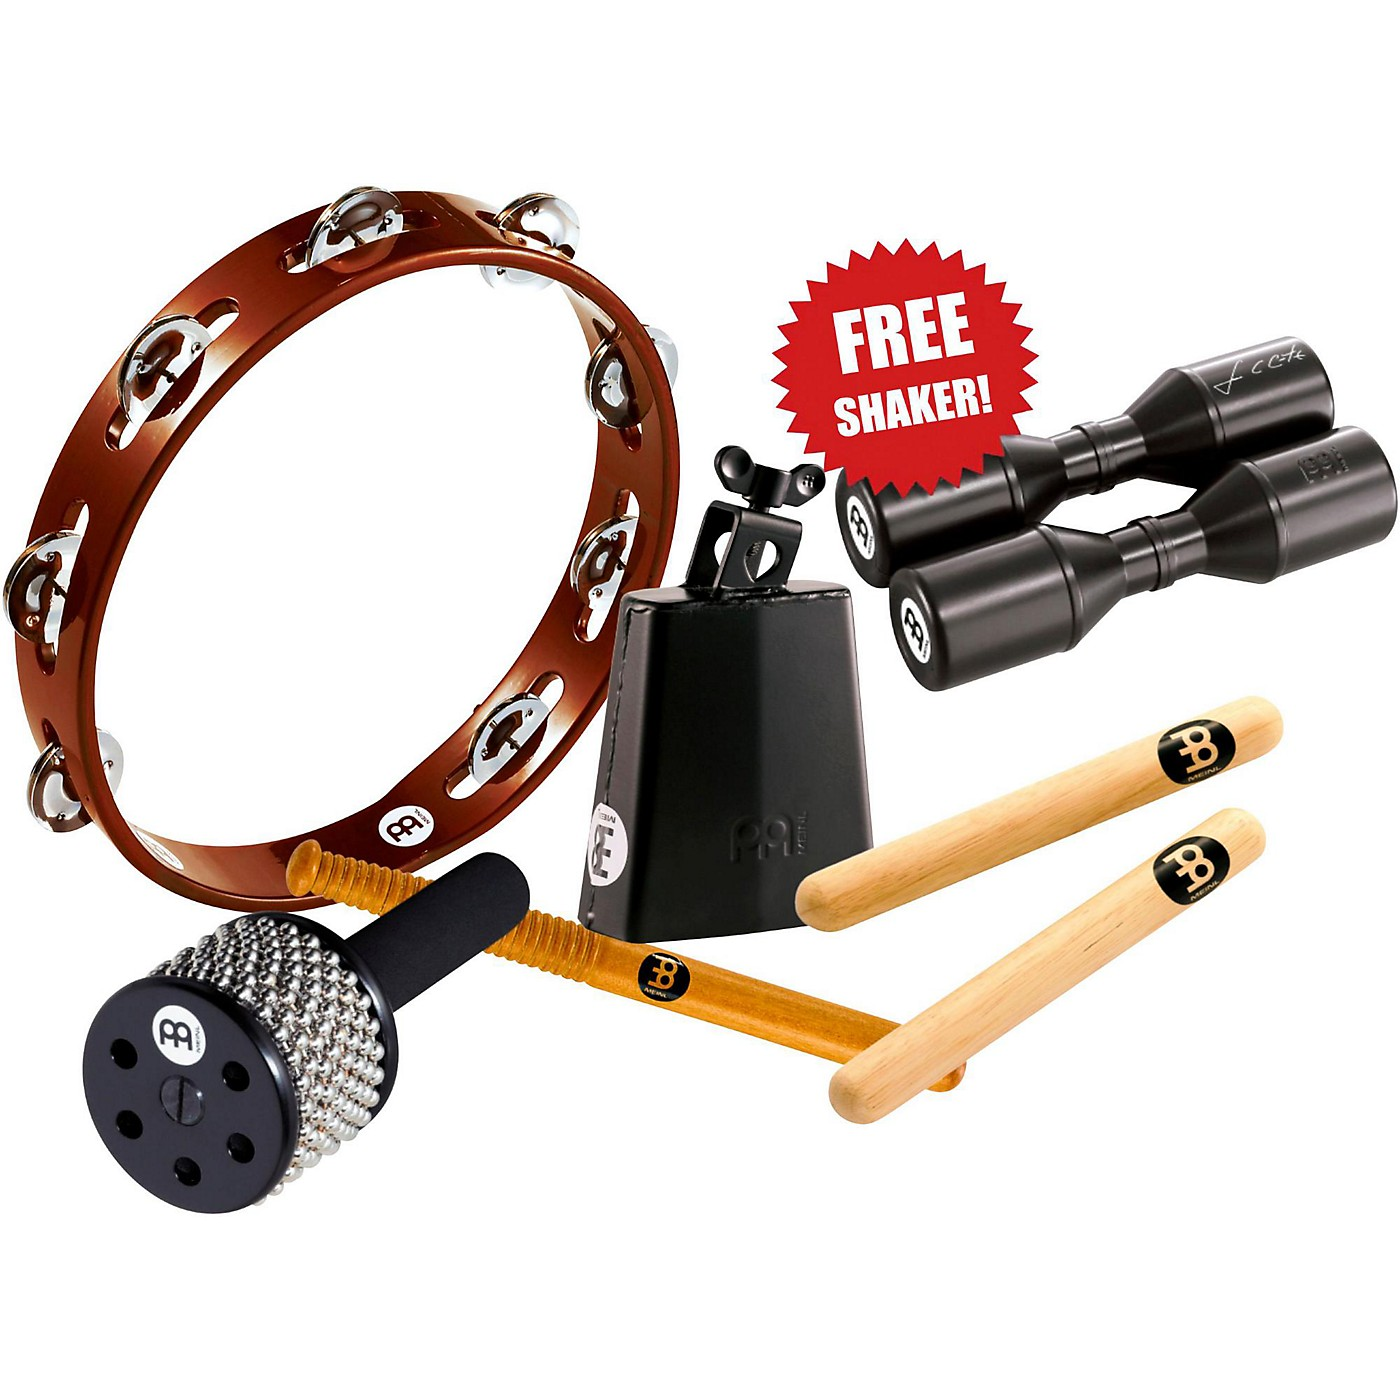 Meinl Essential Perc Pack With Free Shaker for Cajon, Djembe, Bongos and Congas thumbnail